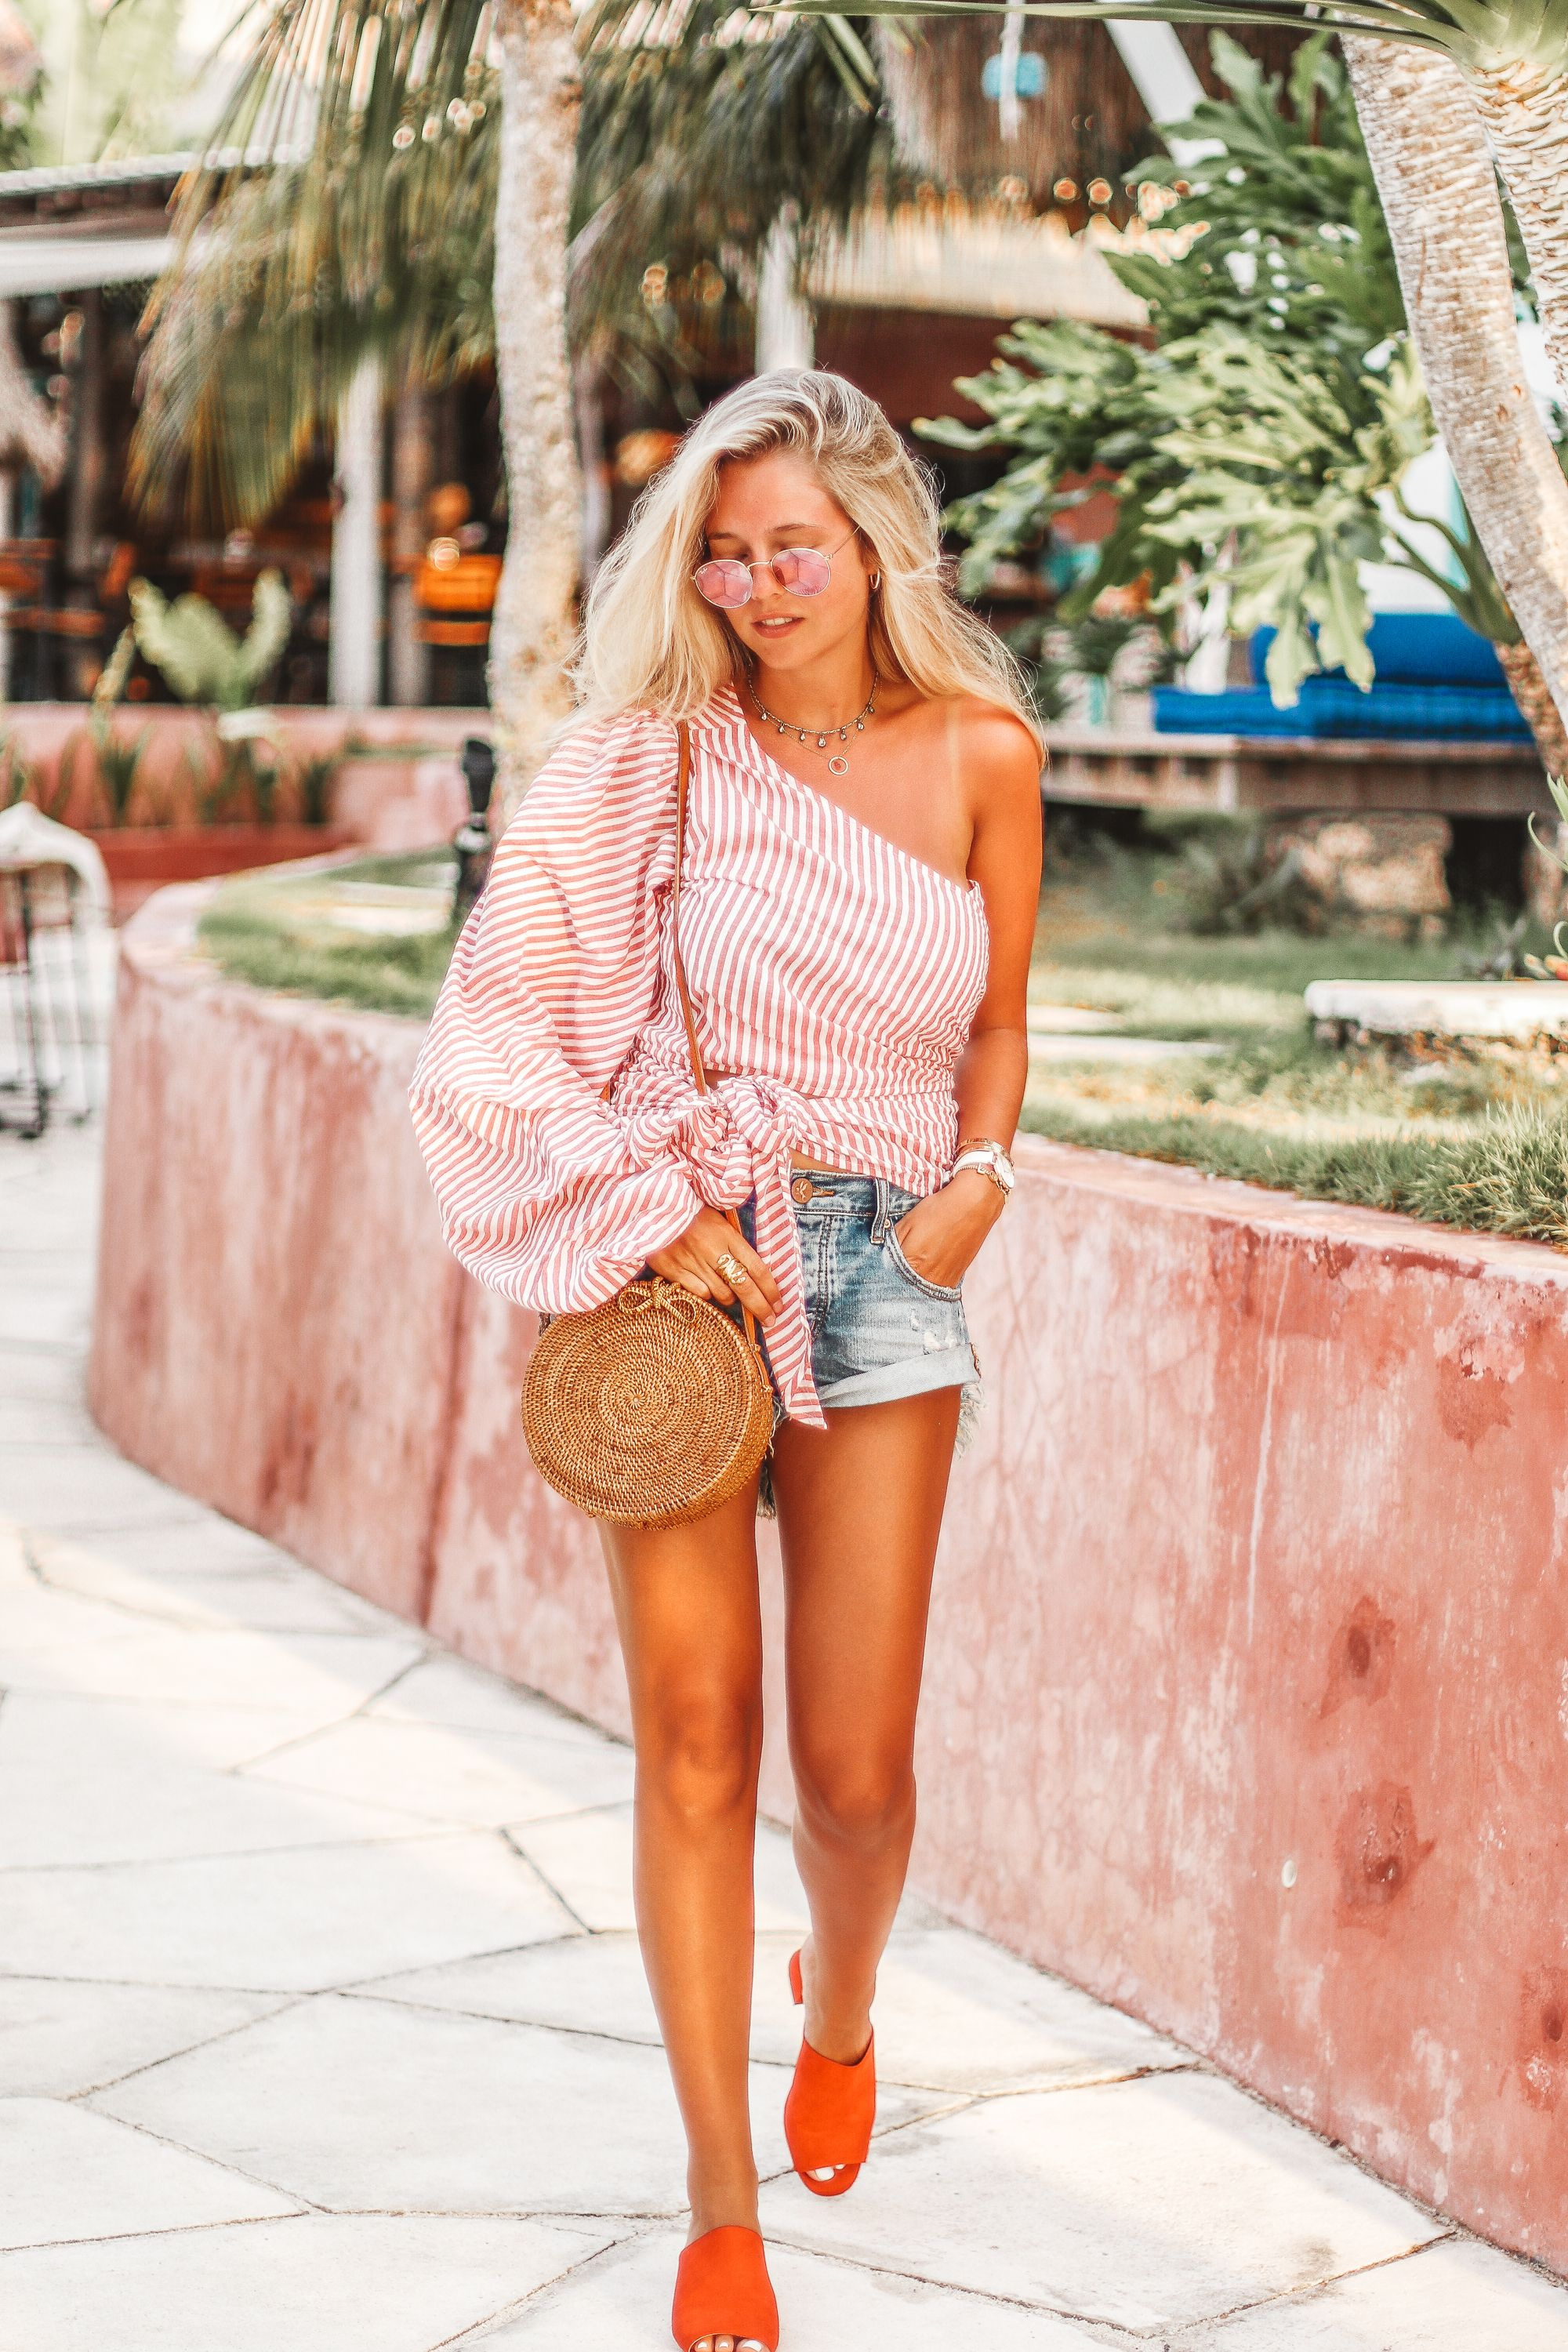 30+ Amazing Summer Outfits Women For Looking Awesome – Summer outfits